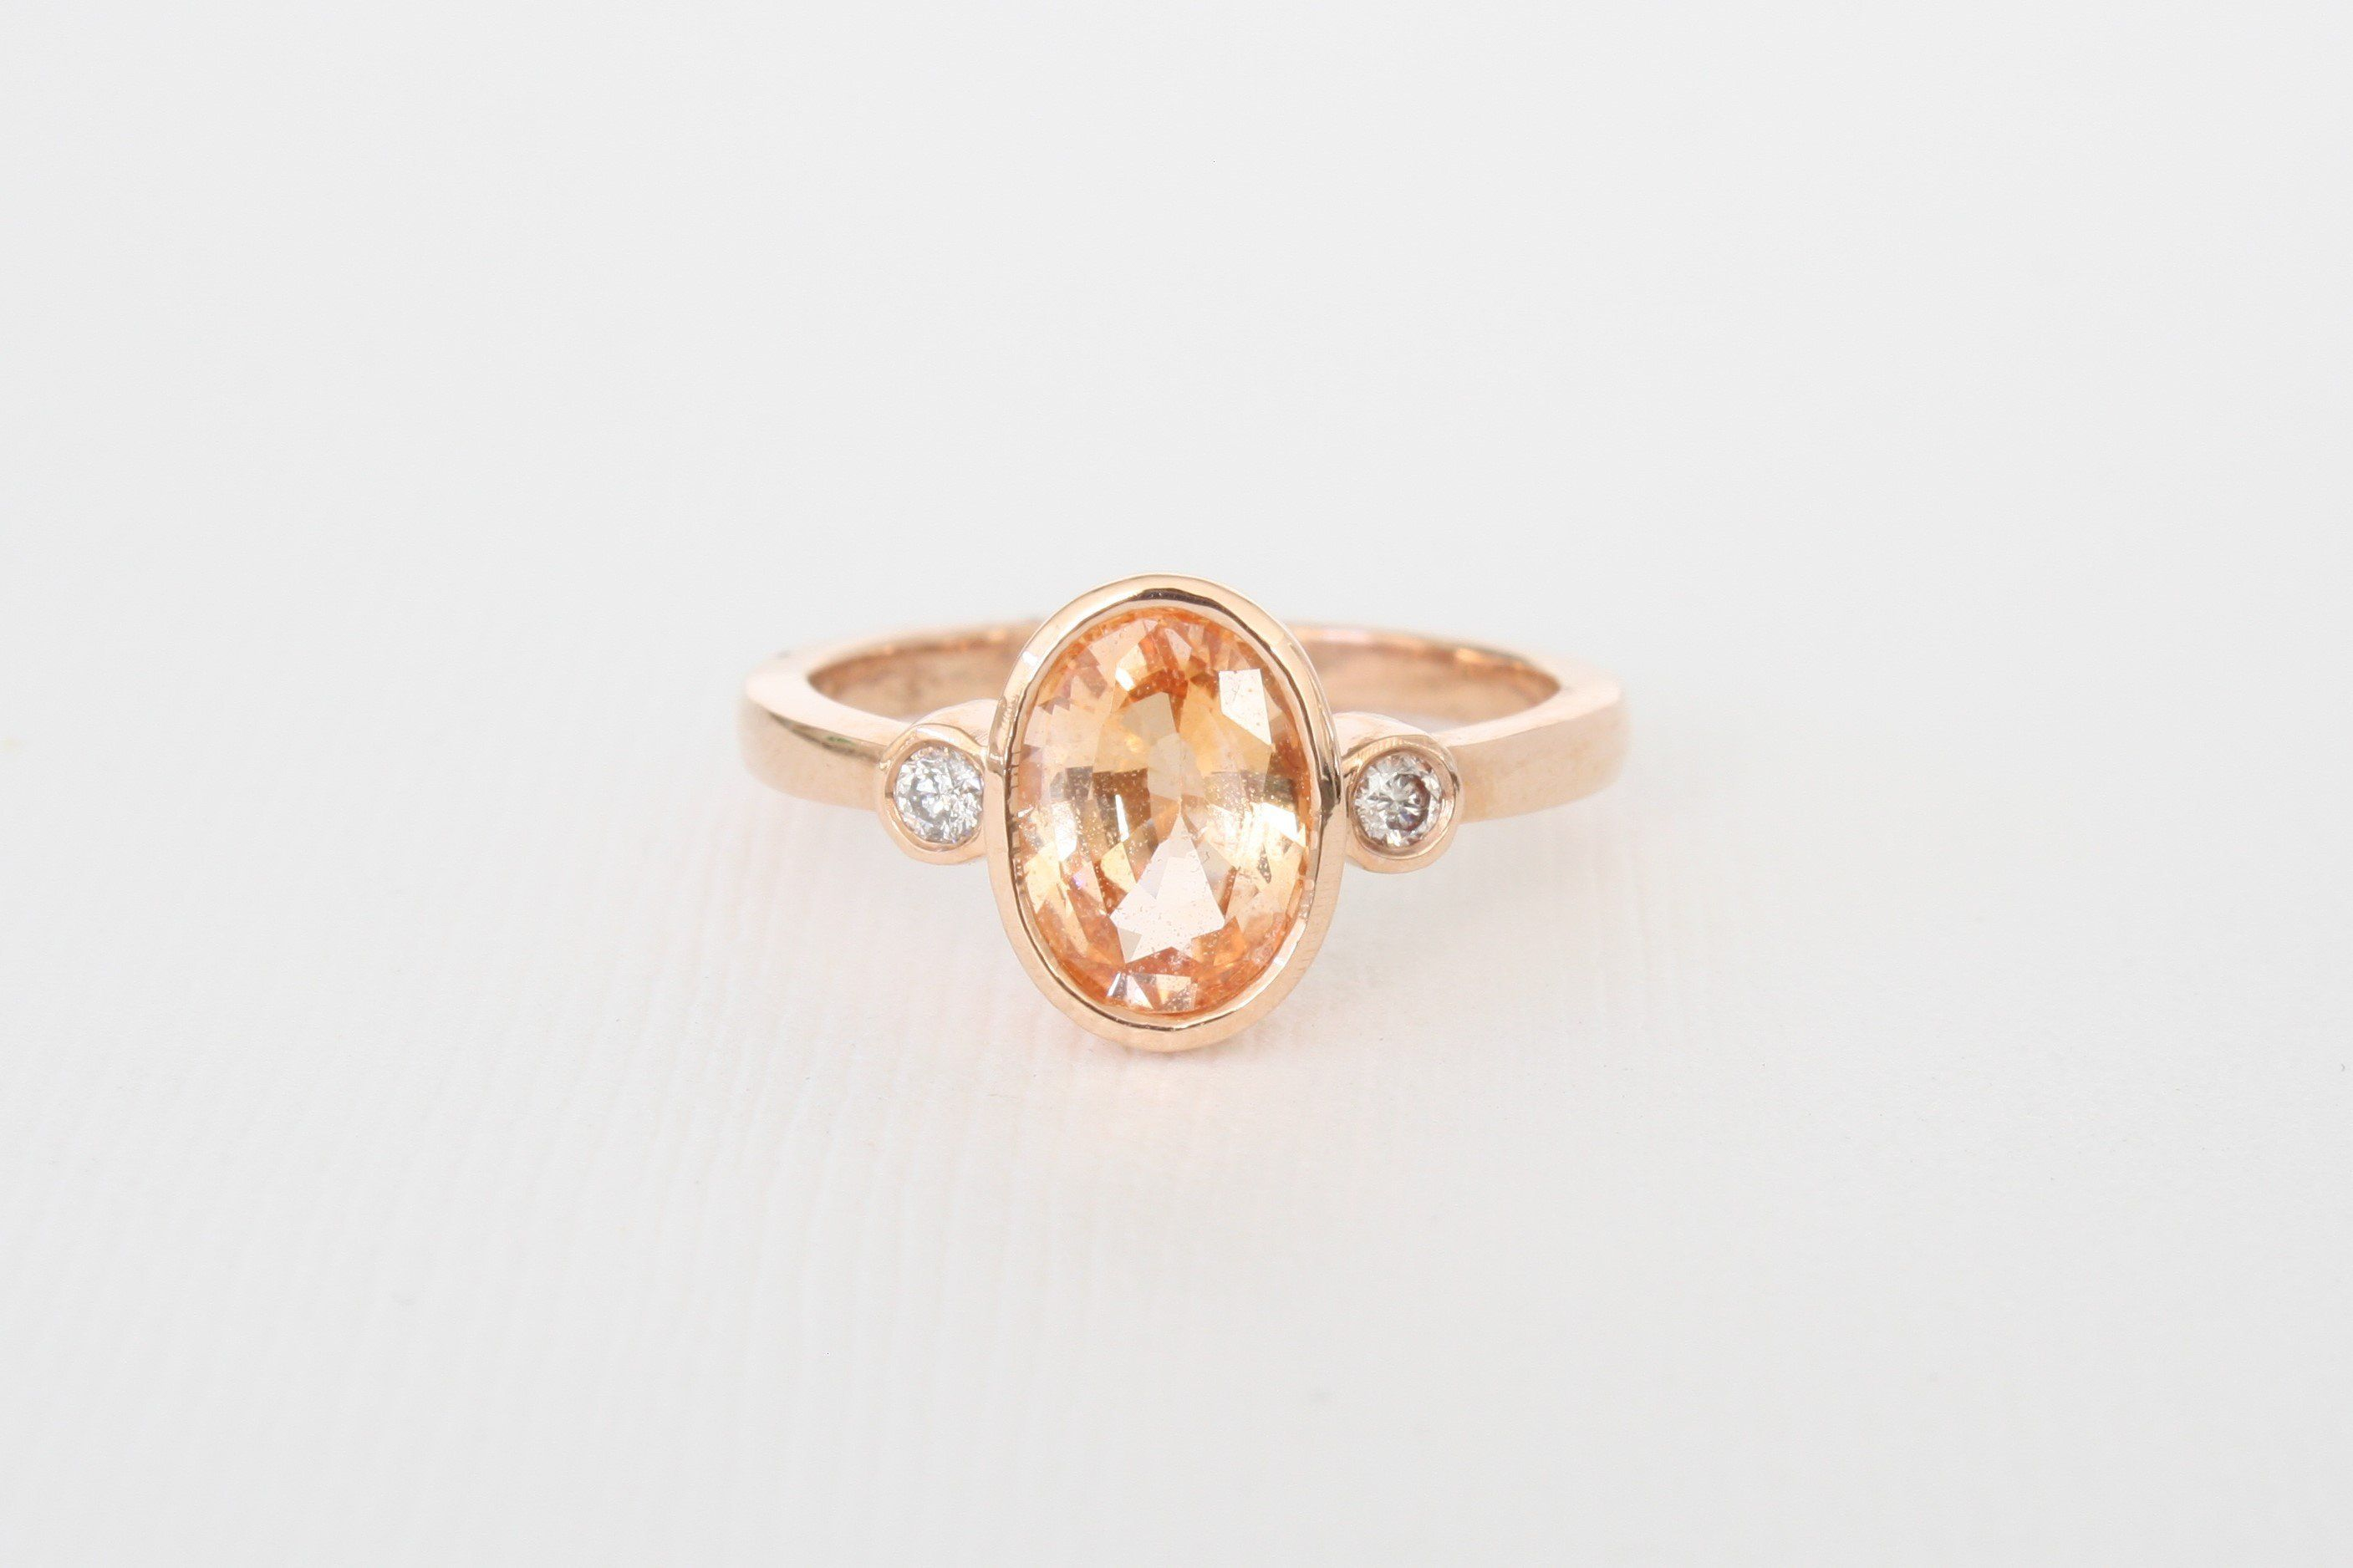 fullxfull champagne sku carts engagement certified p ring peach rose qsdg untreated il bezel gold sapphire